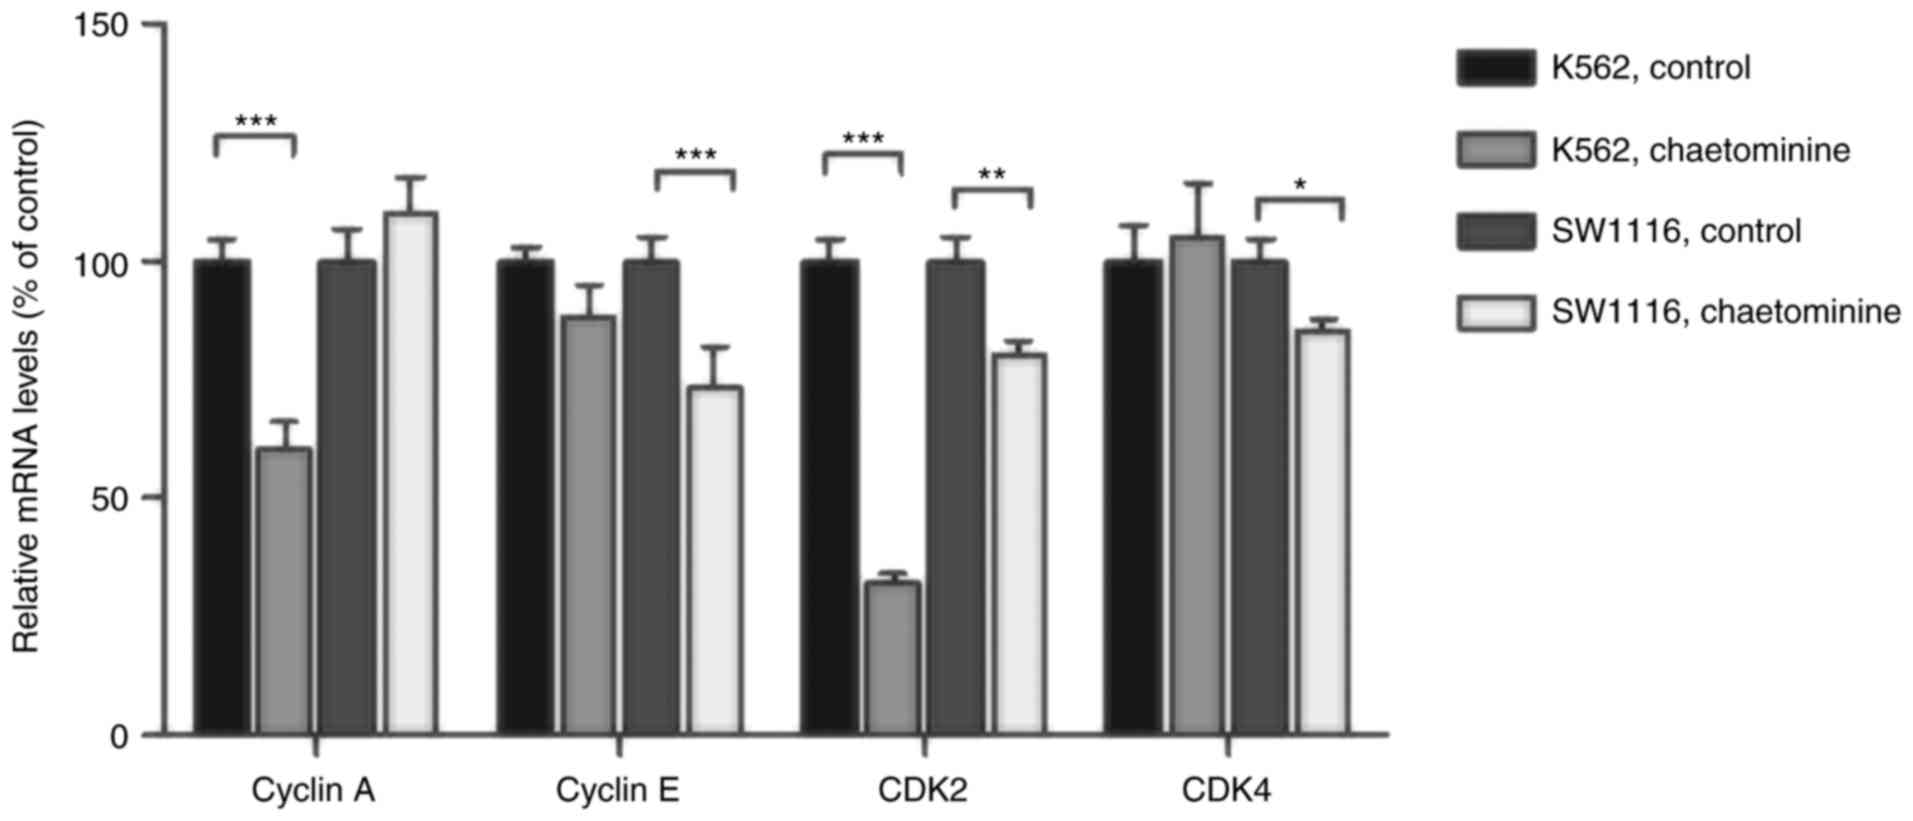 Chaetominine Induces Cell Cycle Arrest In Human Leukemia